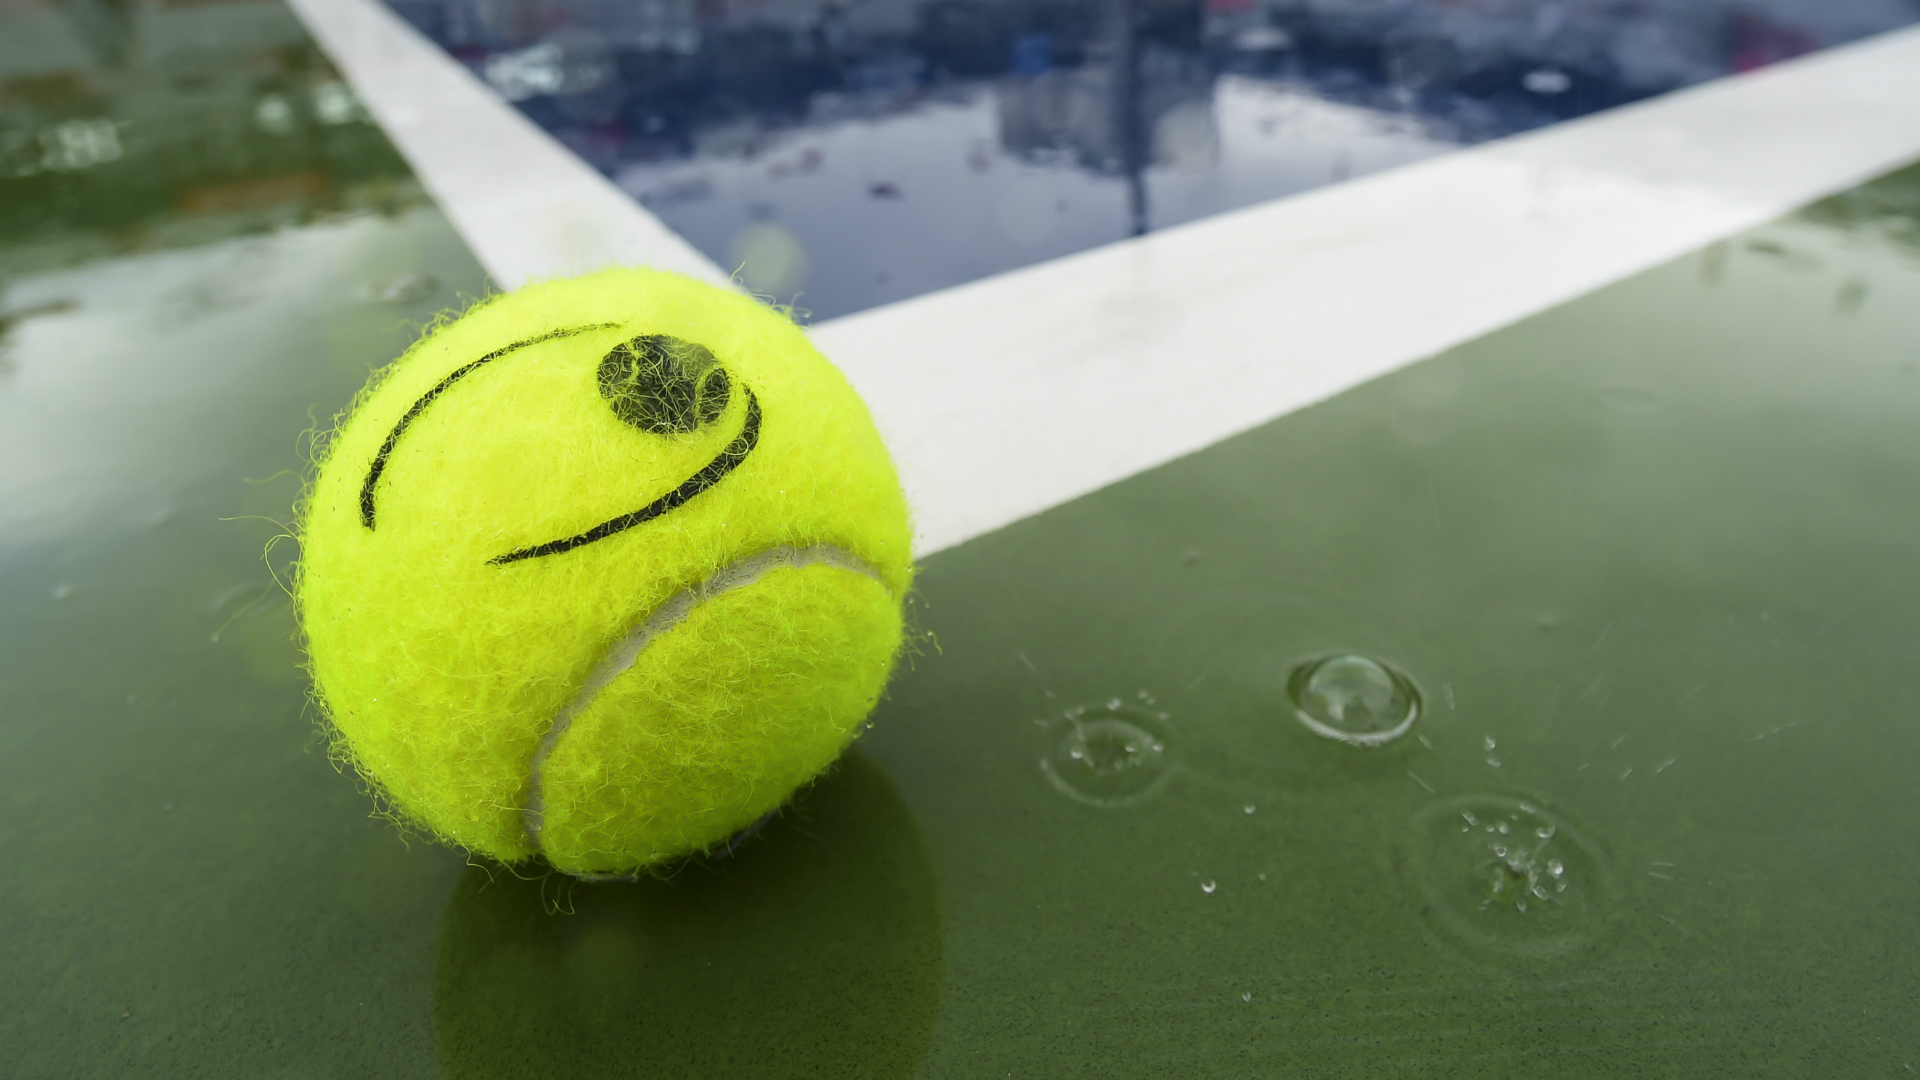 The Winston-Salem Open quarter-finals were pushed back to Friday due to bad weather in North Carolina.